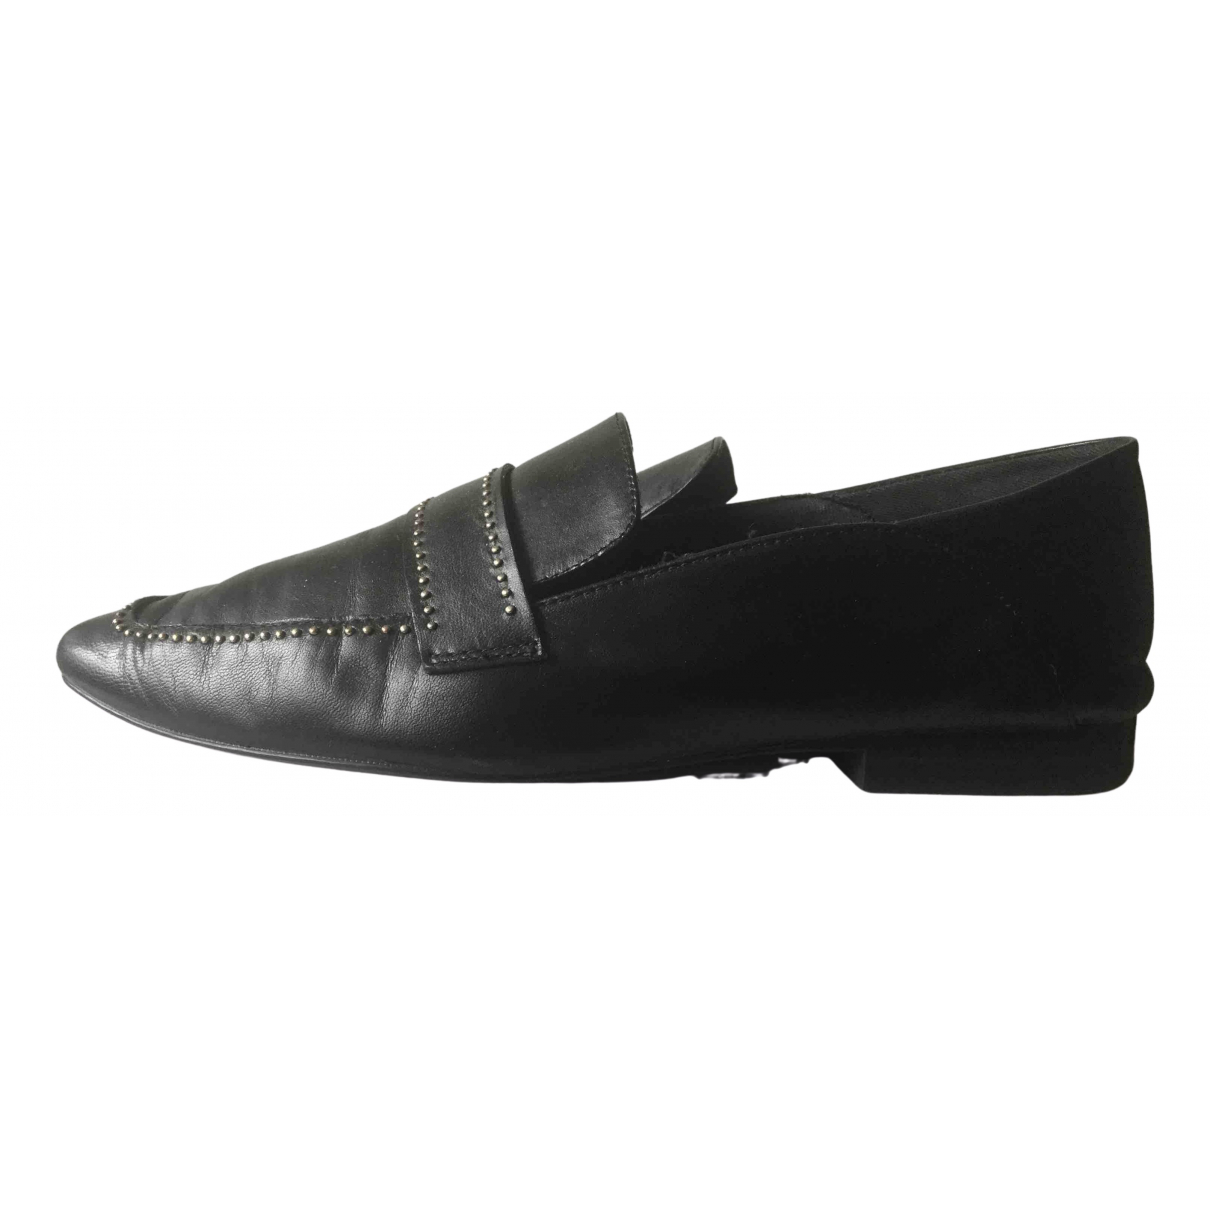 Zara N Black Leather Flats for Women 37 EU